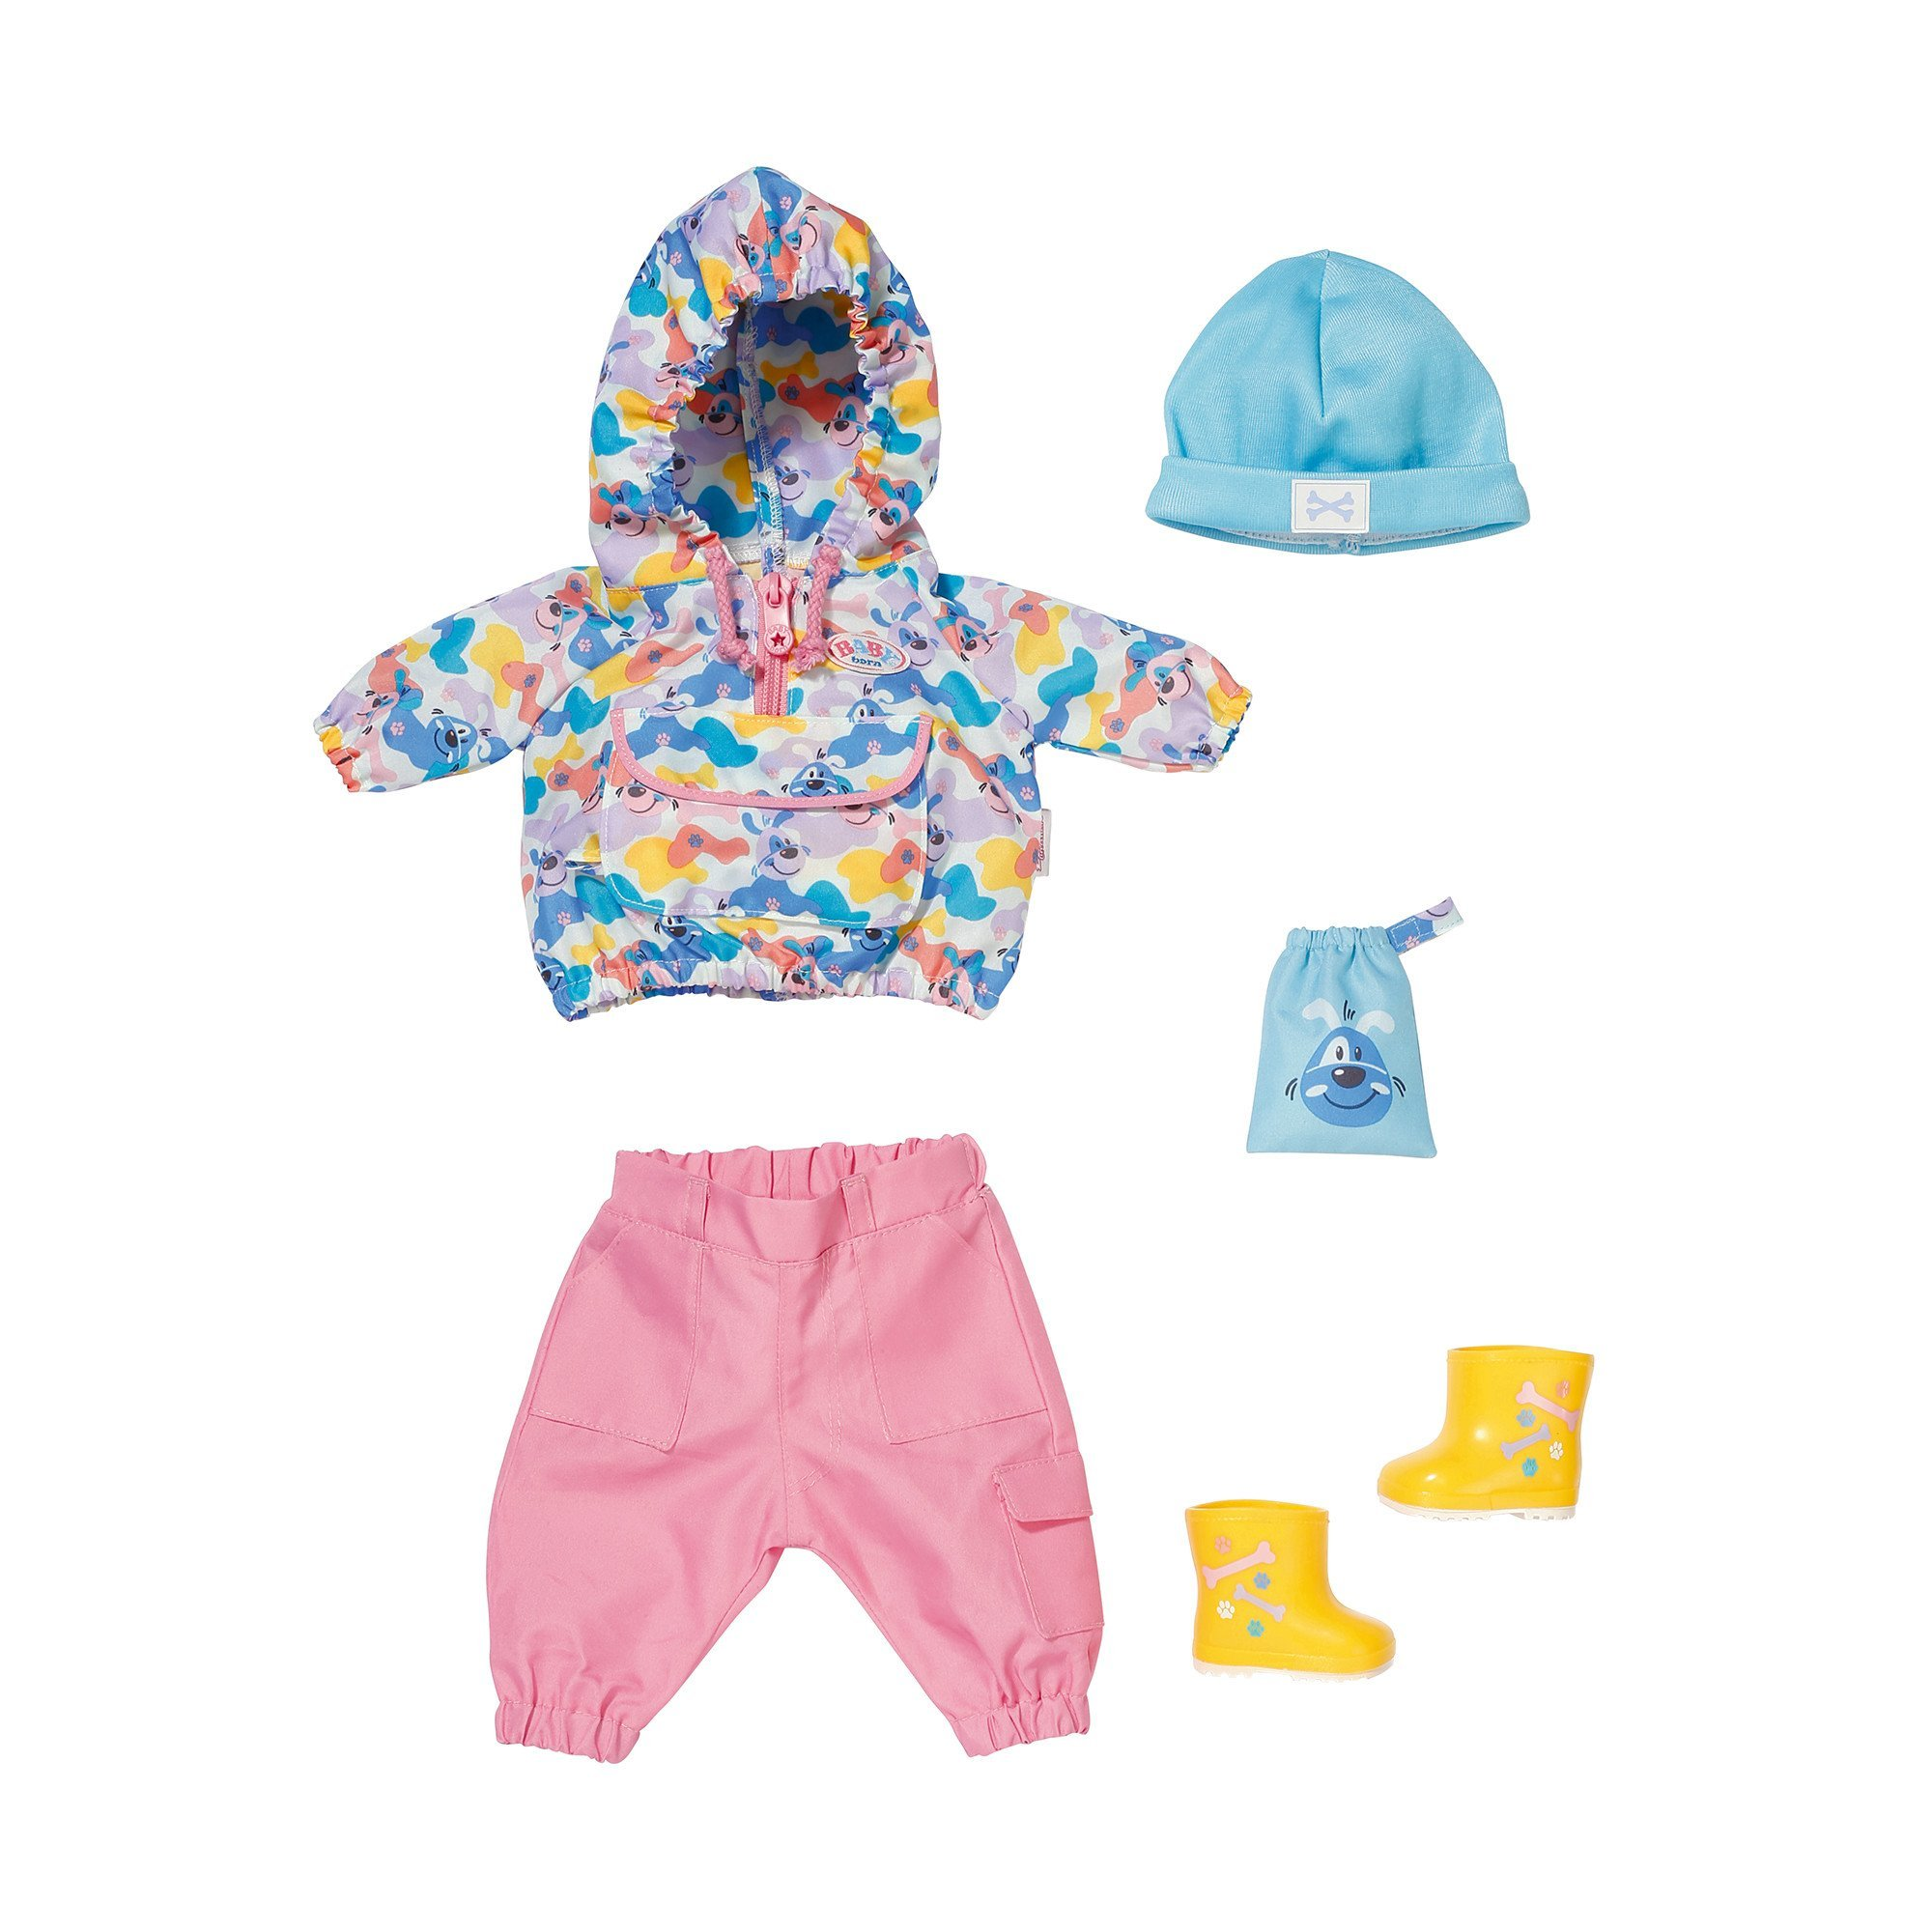 Baby Born - Dlx Walk the Dog Outfit 43cm (829905)